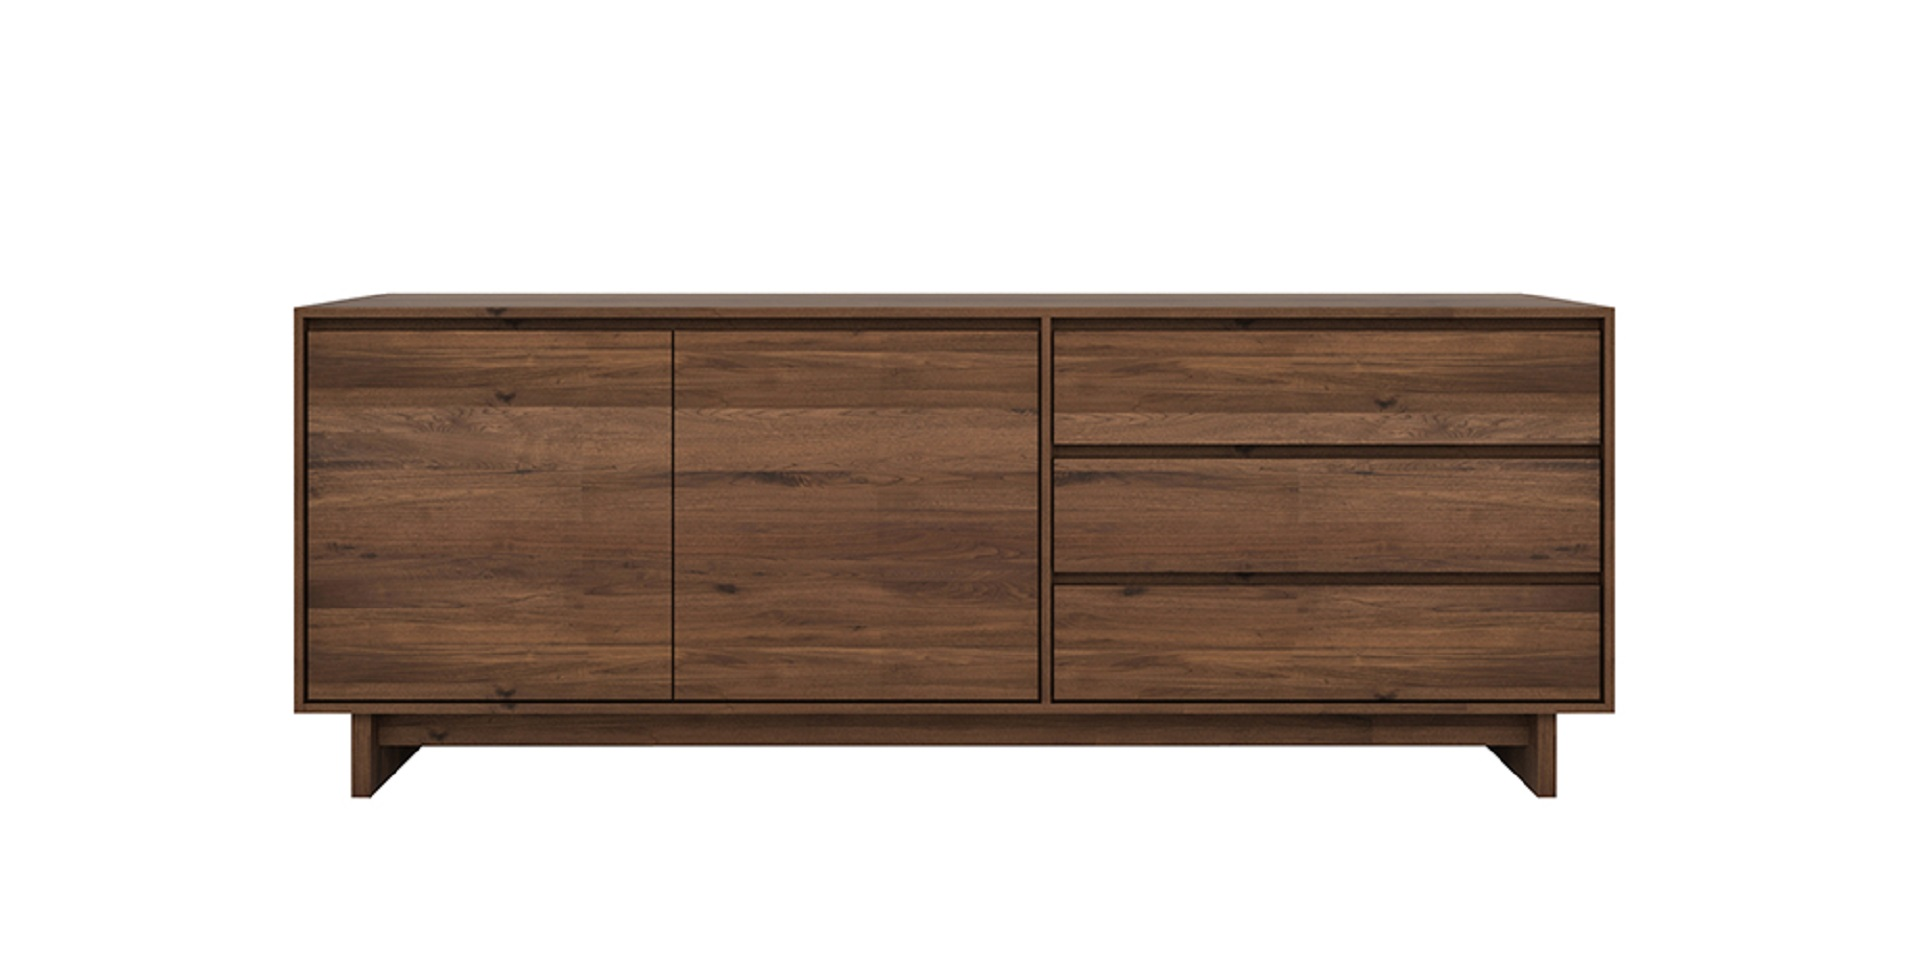 Ethnicraft Walnut Furniture